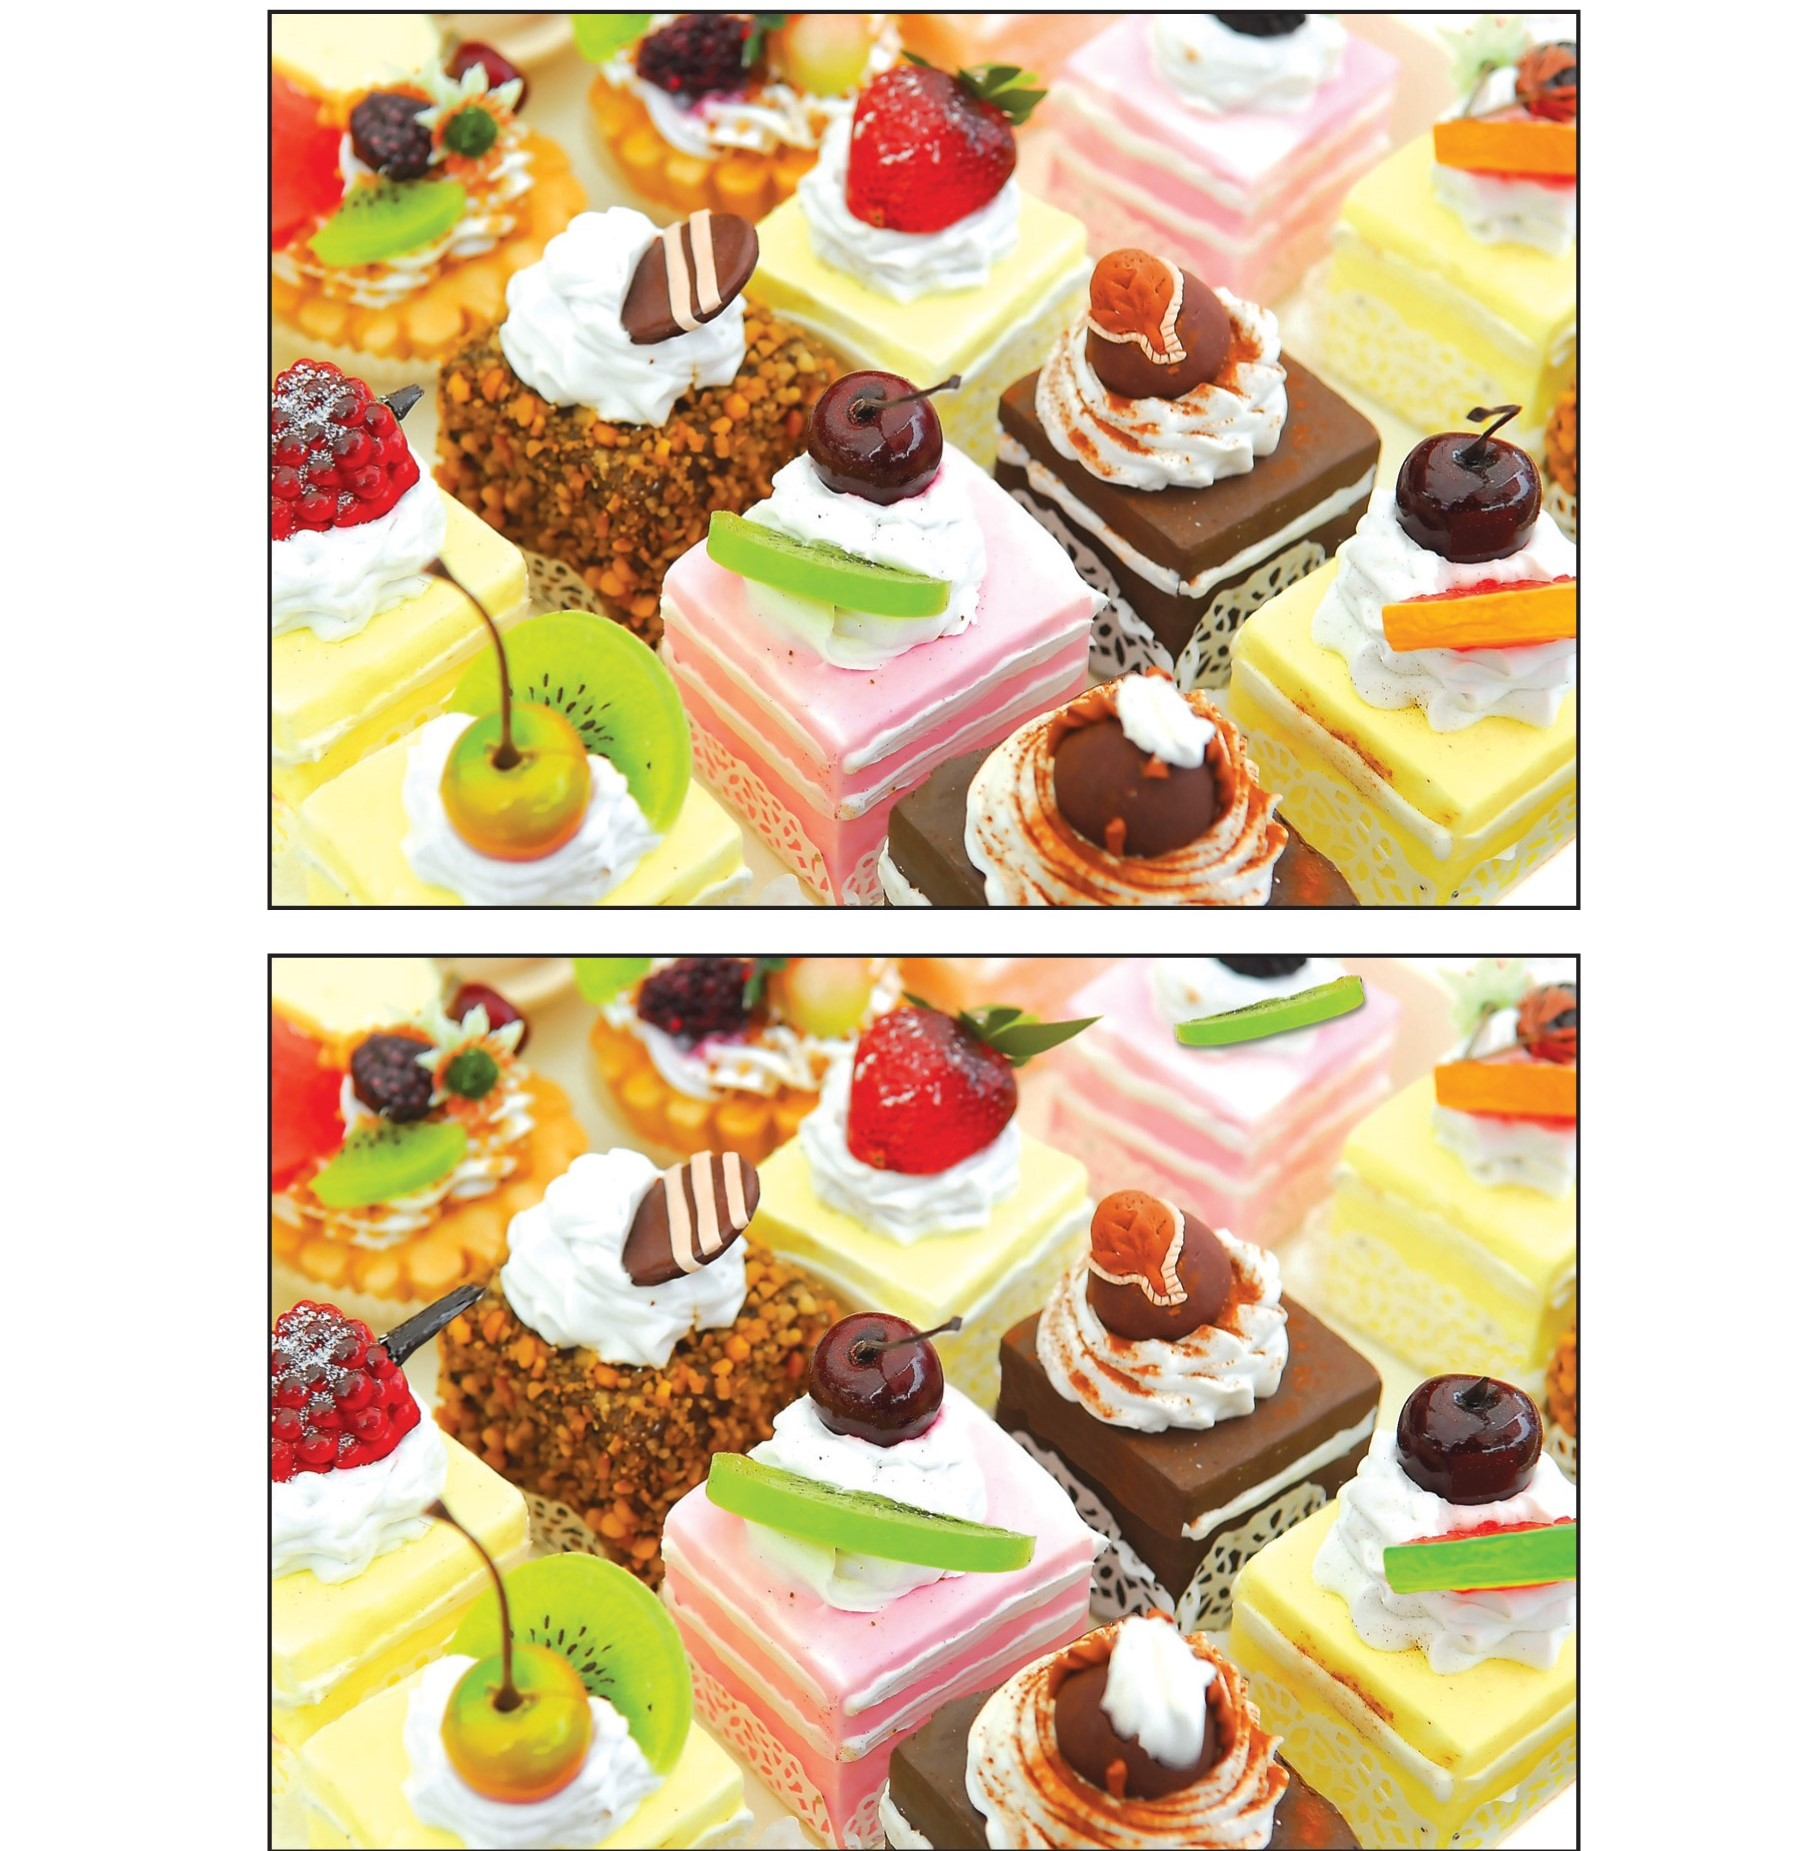 Two picture of petit four cakes with 9 differences between them.